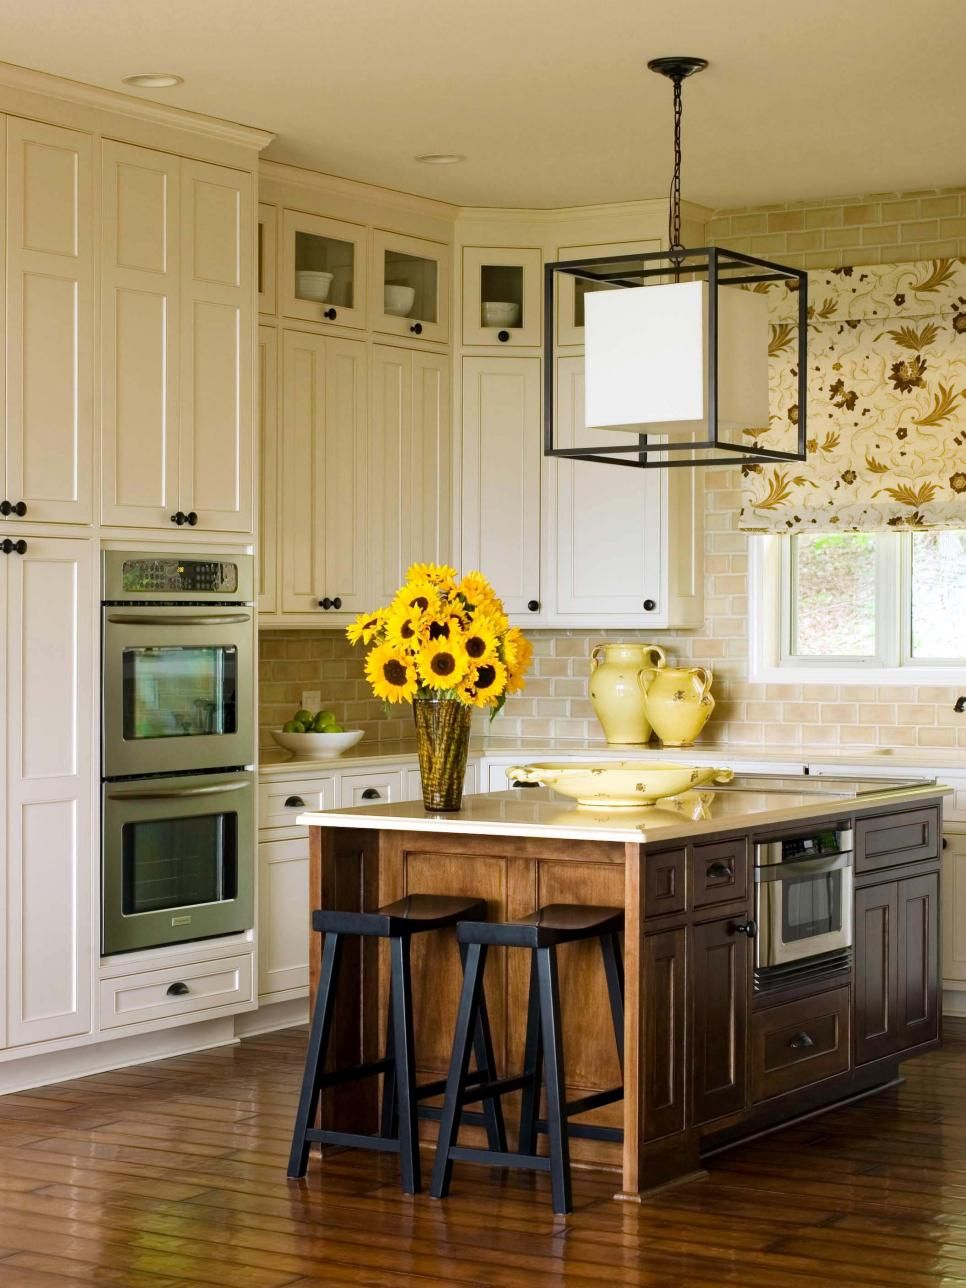 Beautiful Pictures of Kitchen Islands: HGTV's Favorite ...